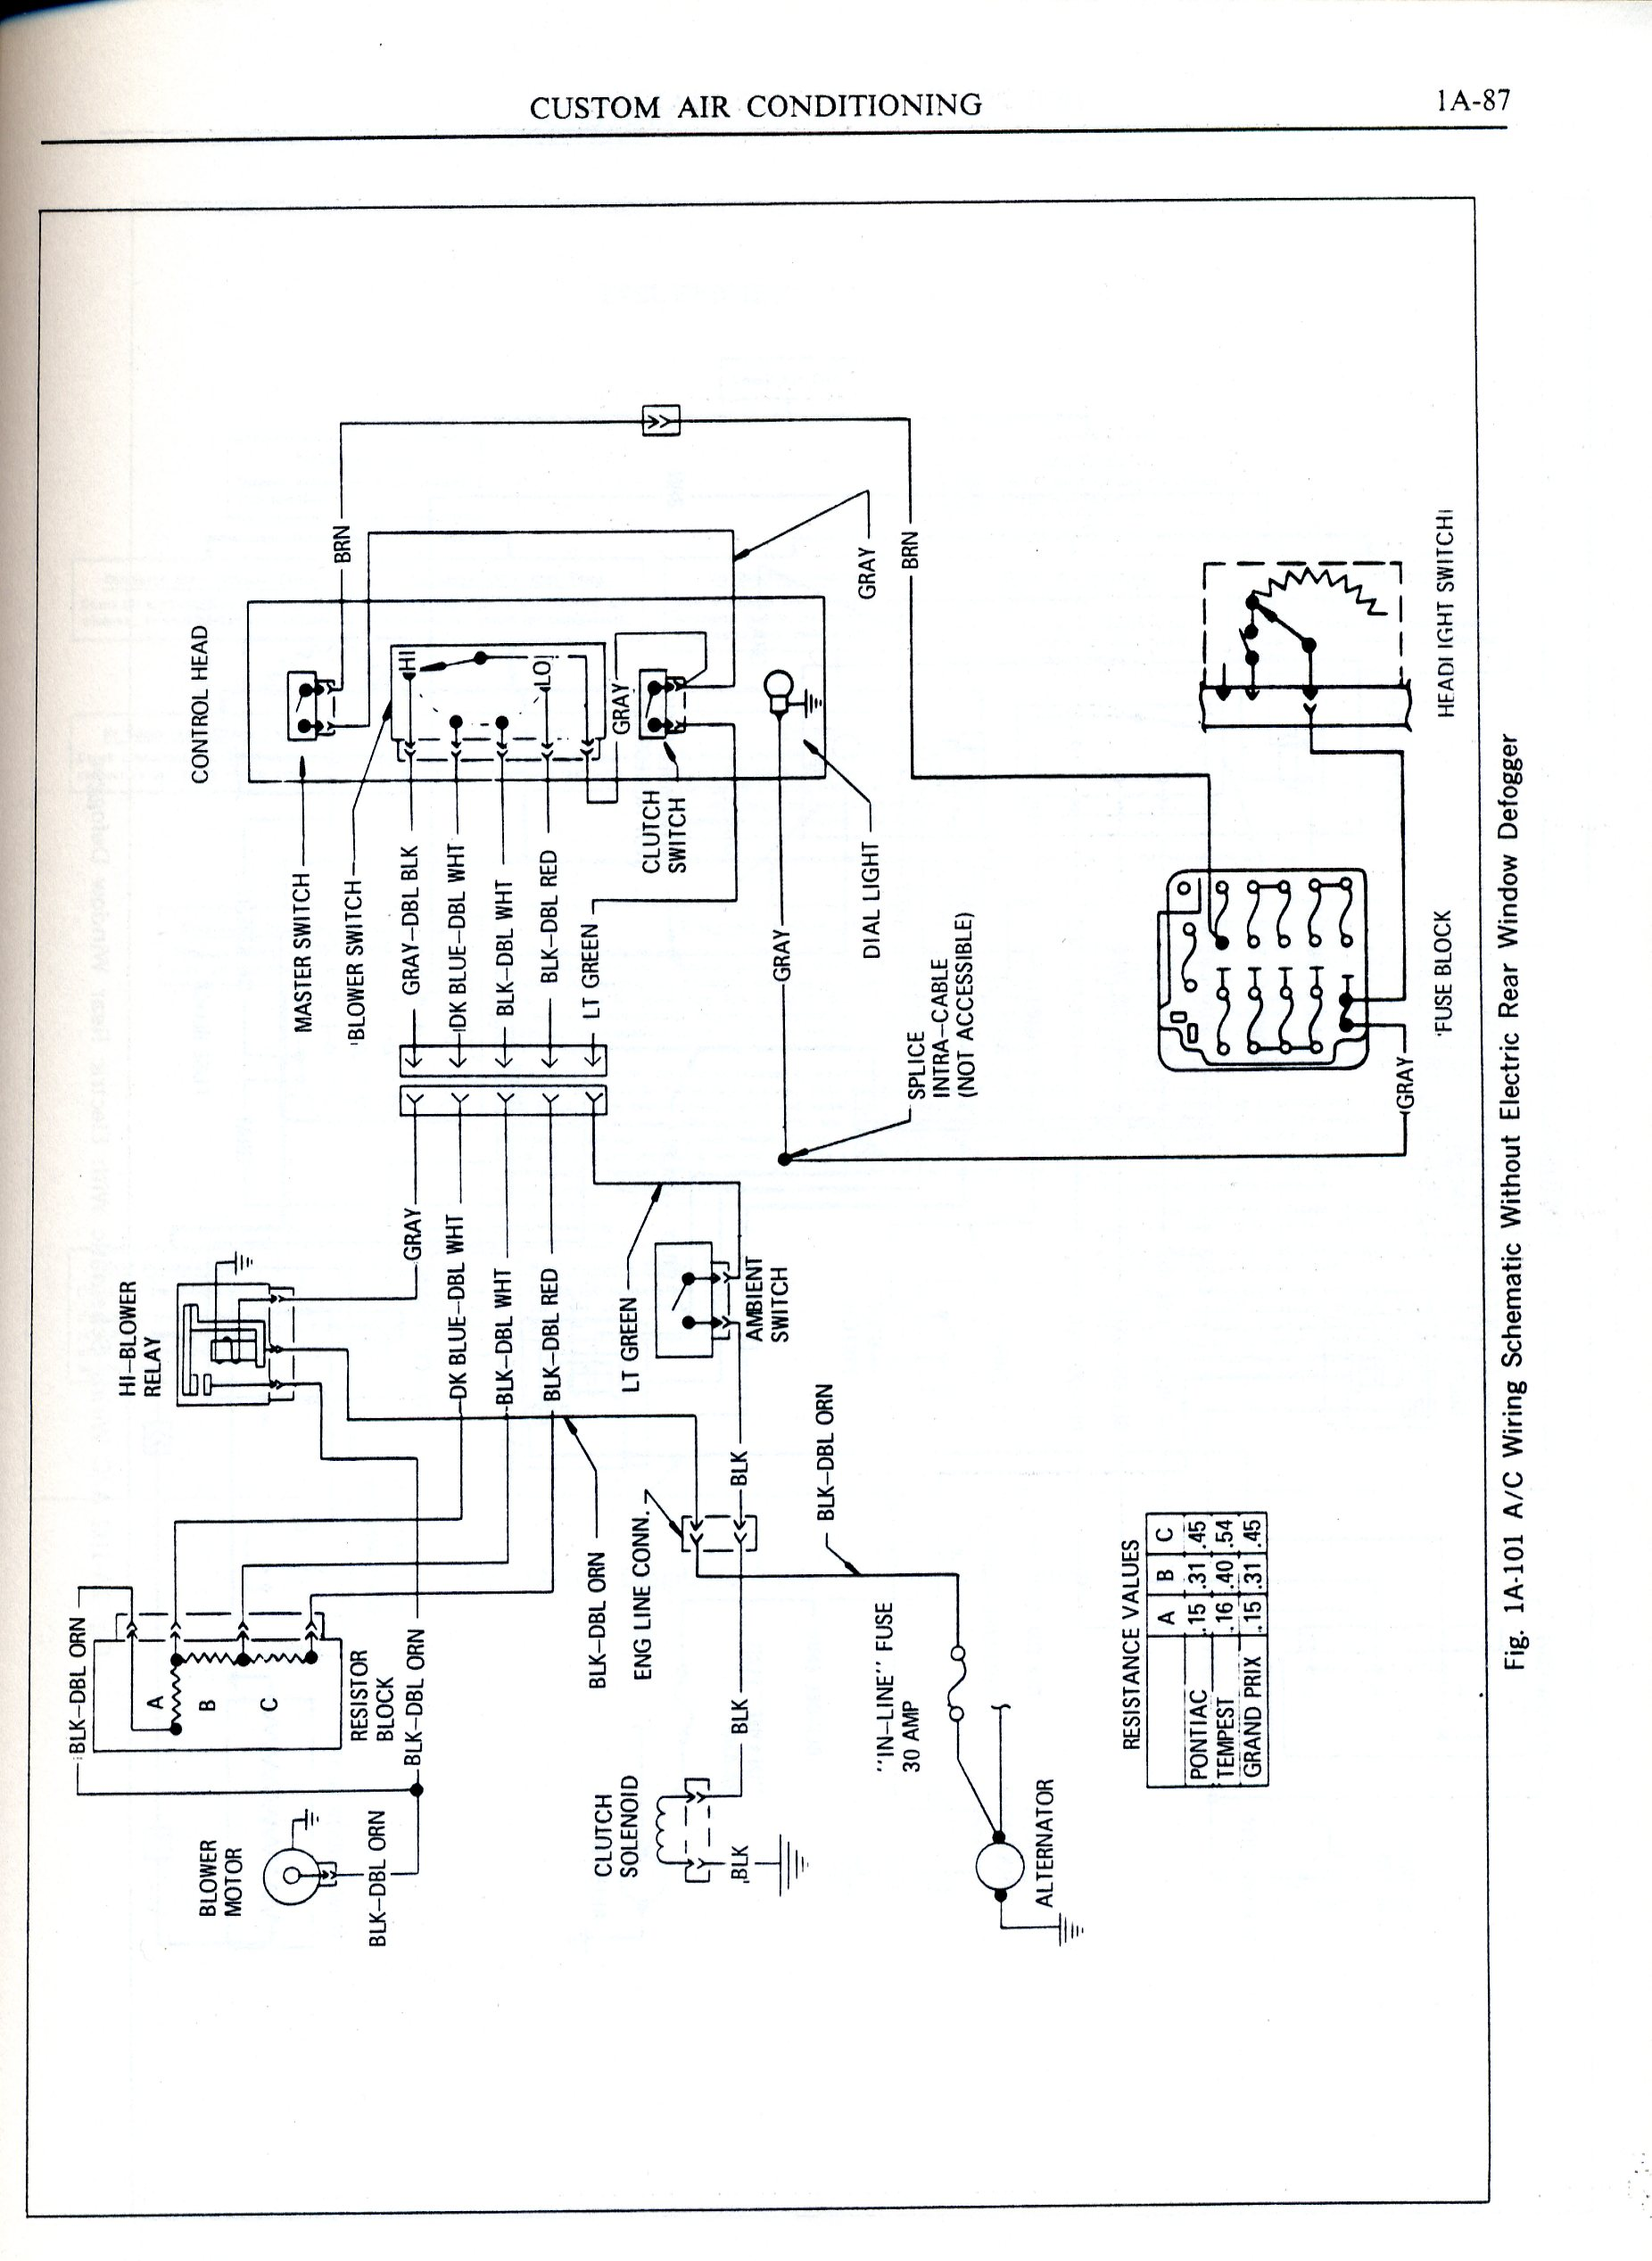 1970 Gto Fuse Box Wiring Library Pontiac Alternator Diagram Click Image For Larger Version Name Img001 Views 28439 Size 4338